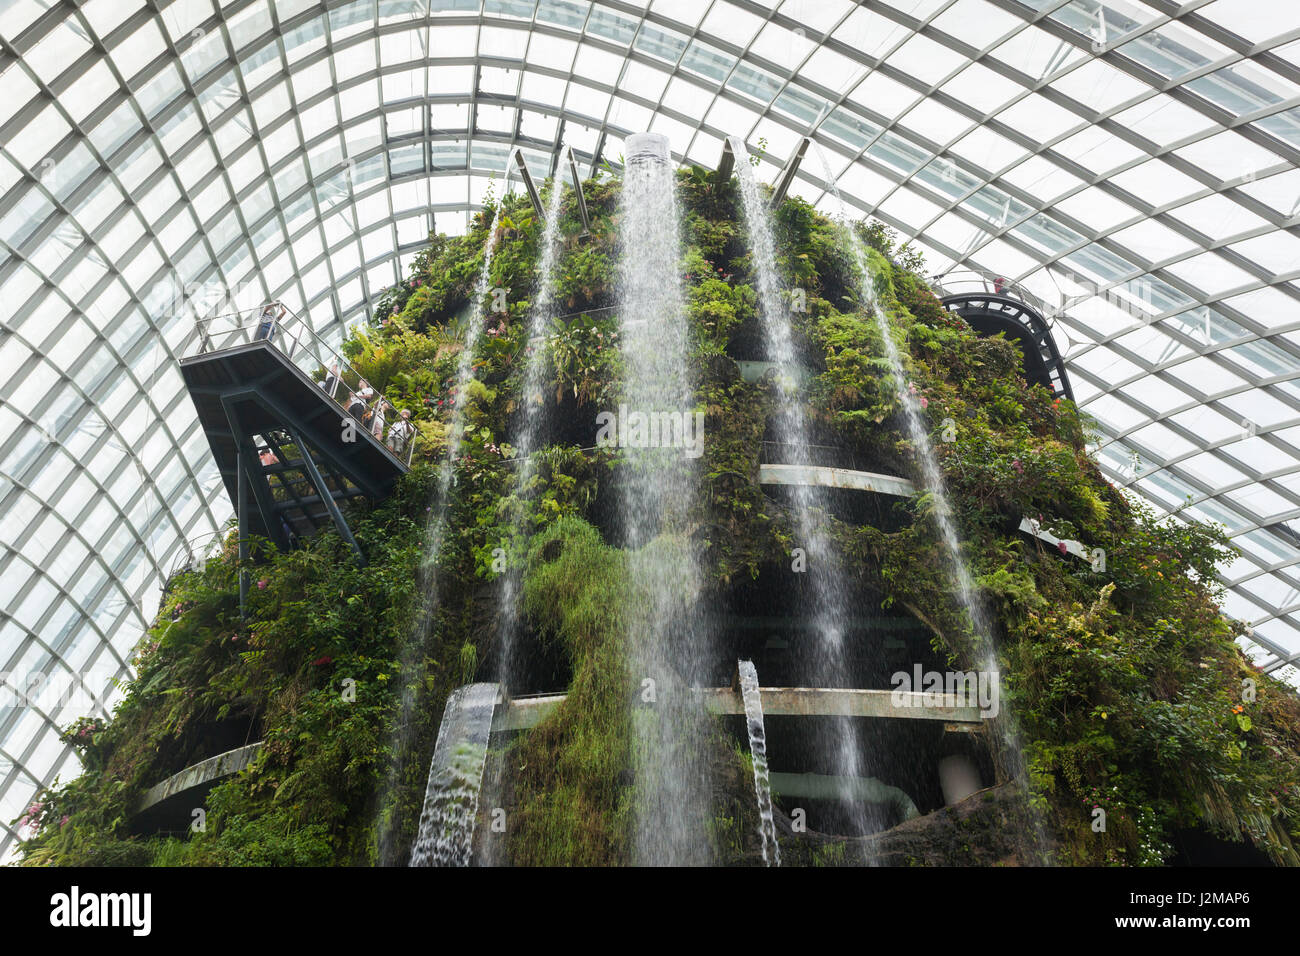 Elevated View Of Gardens Bay Indoor Stockfotos & Elevated View Of ...